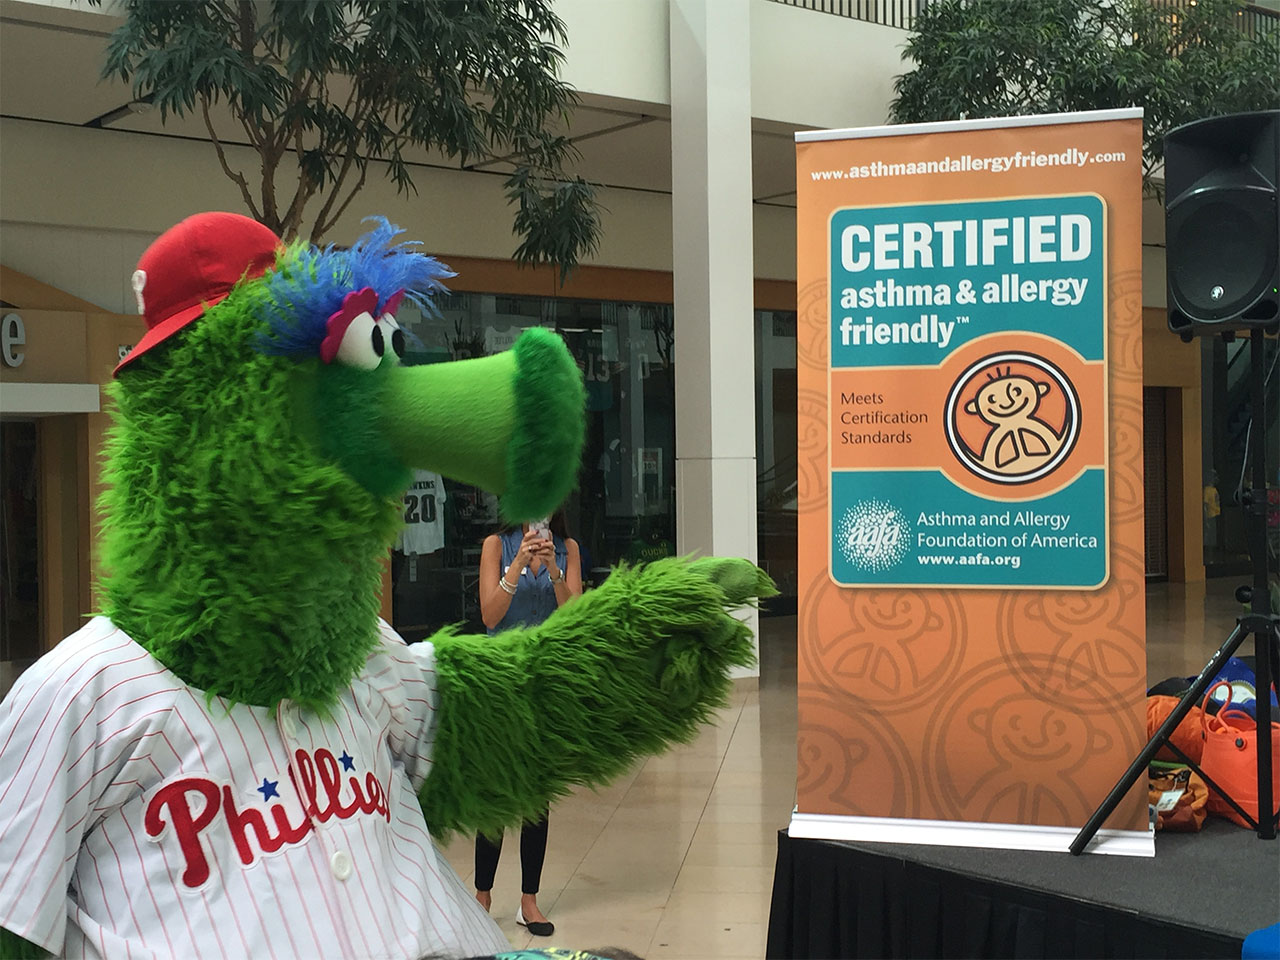 Phillies Phanatic asthma and allergy friendly